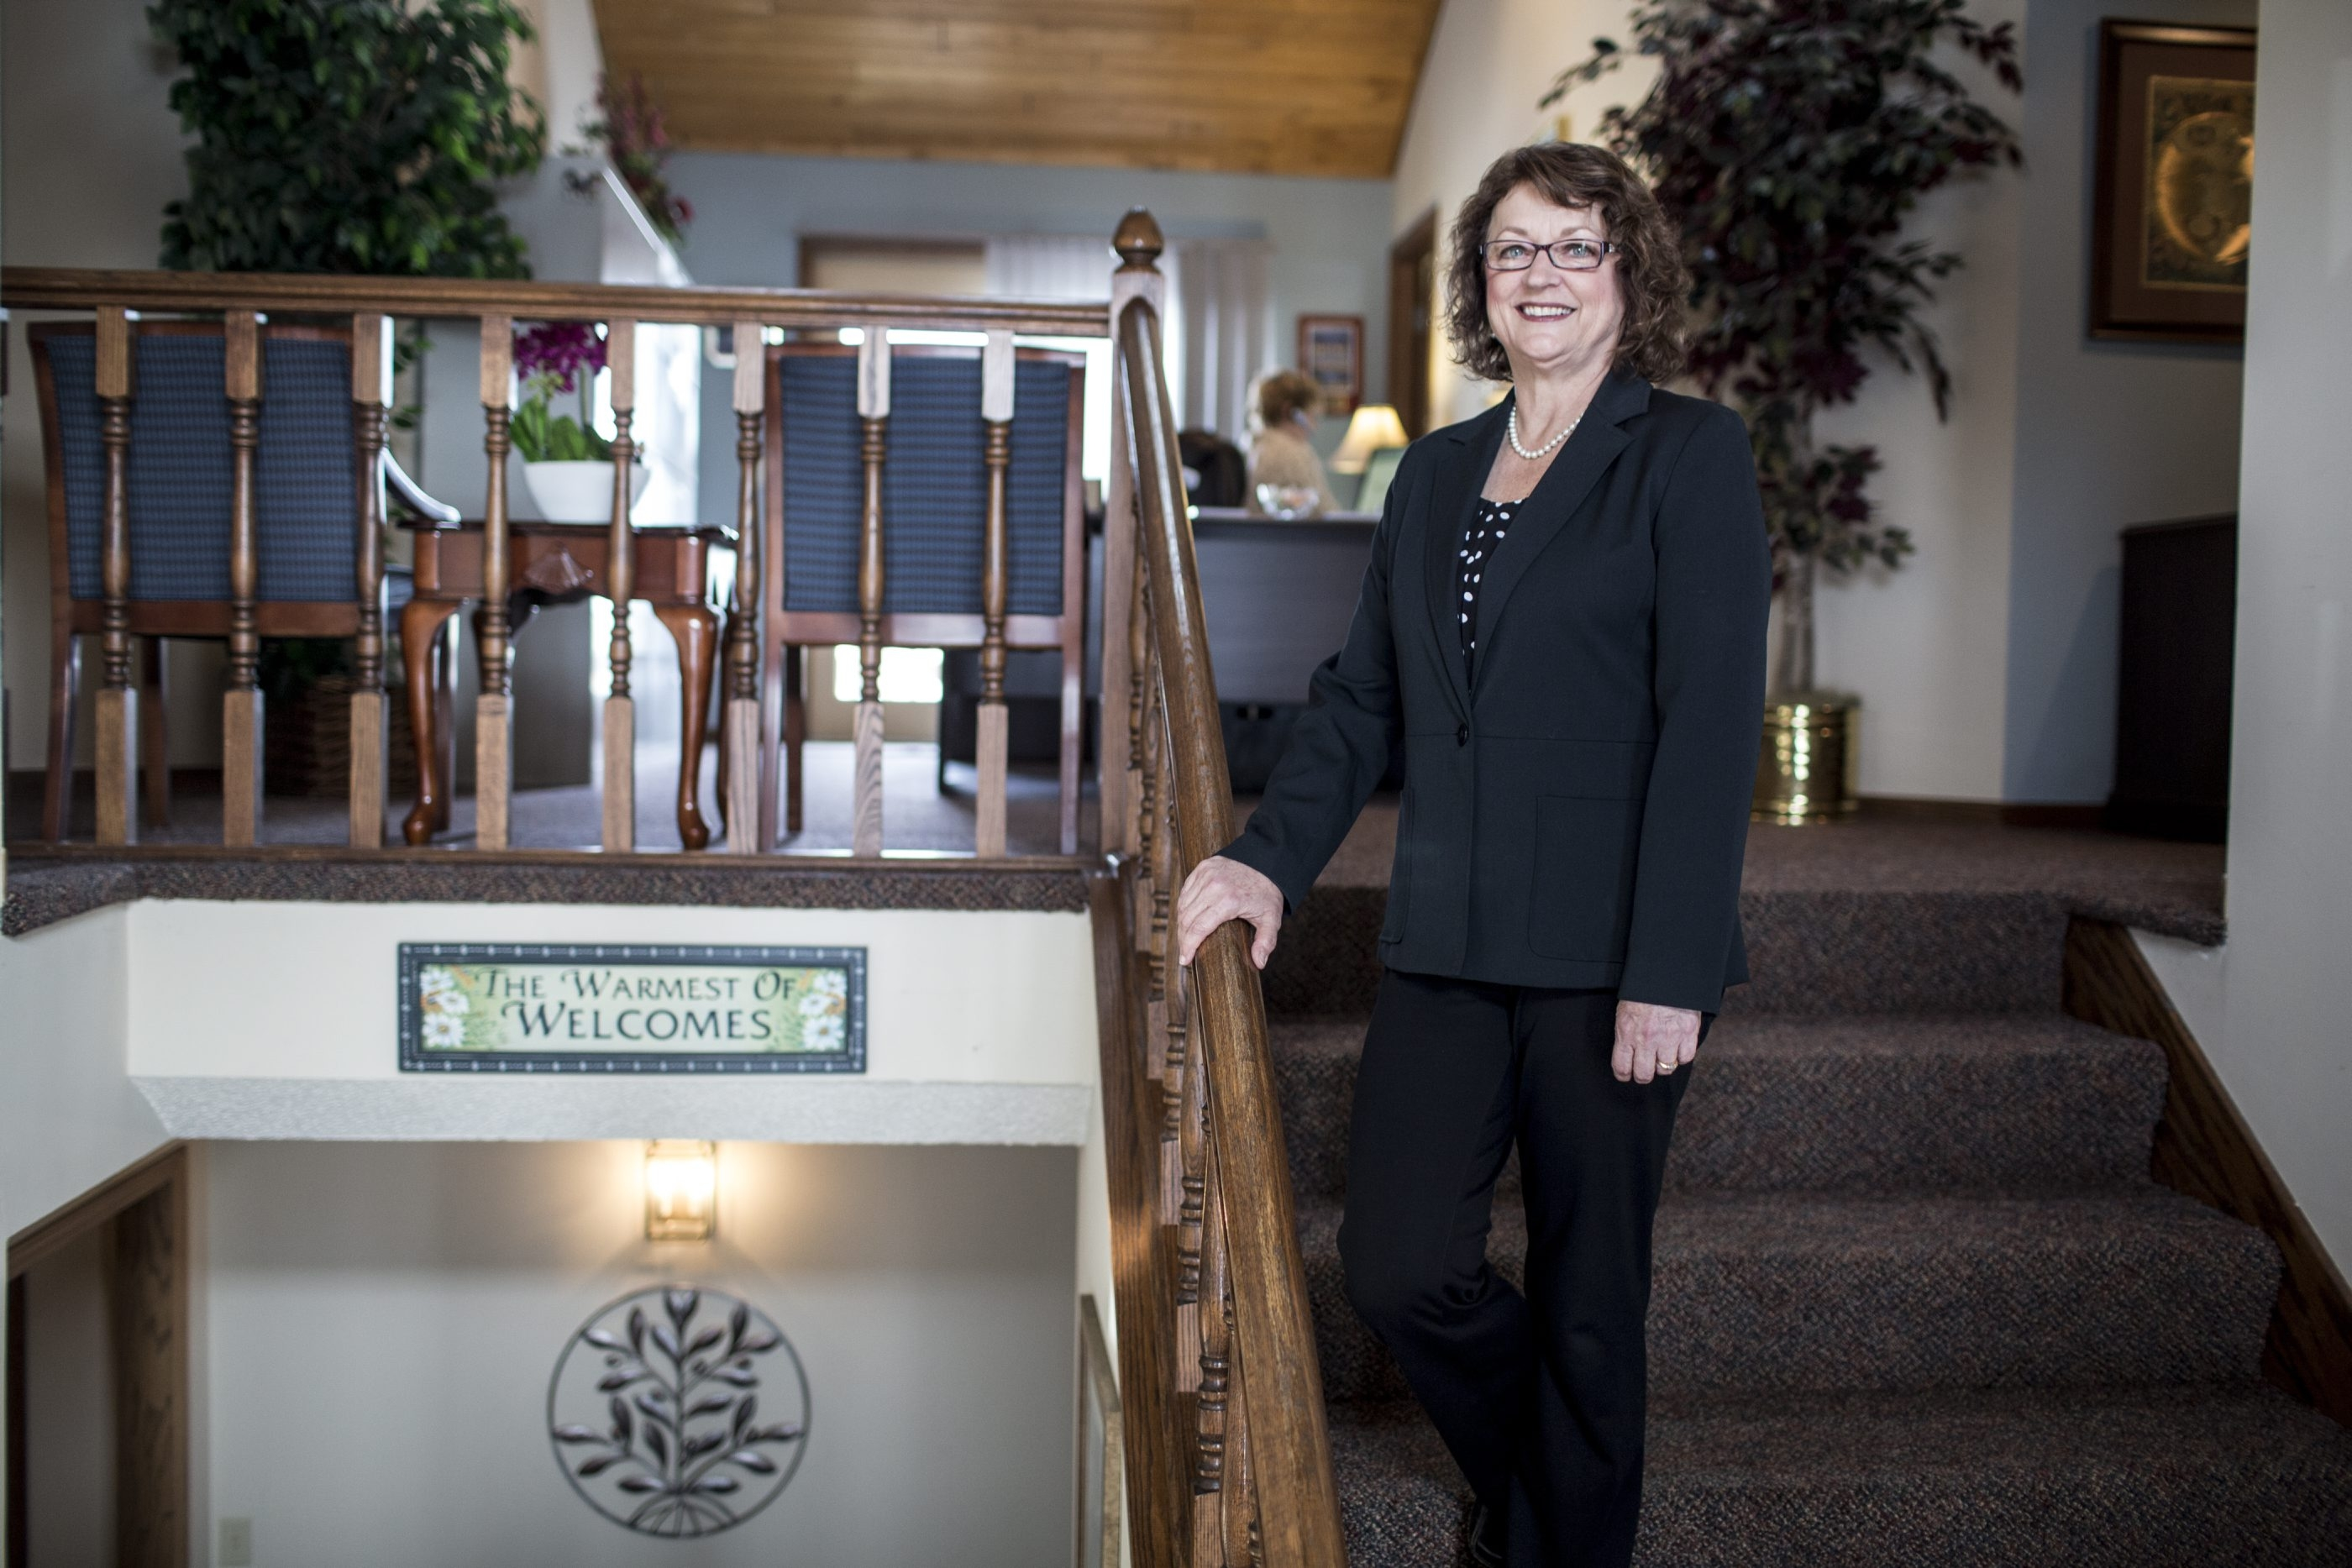 Susan Zimmerman, who is both a financial adviser and a family therapist, is seen at her office in Apple Valley, Minn. Couples nearing retirement must discuss not only whether they have enough, but what will happen when routines are different and less money flows in.